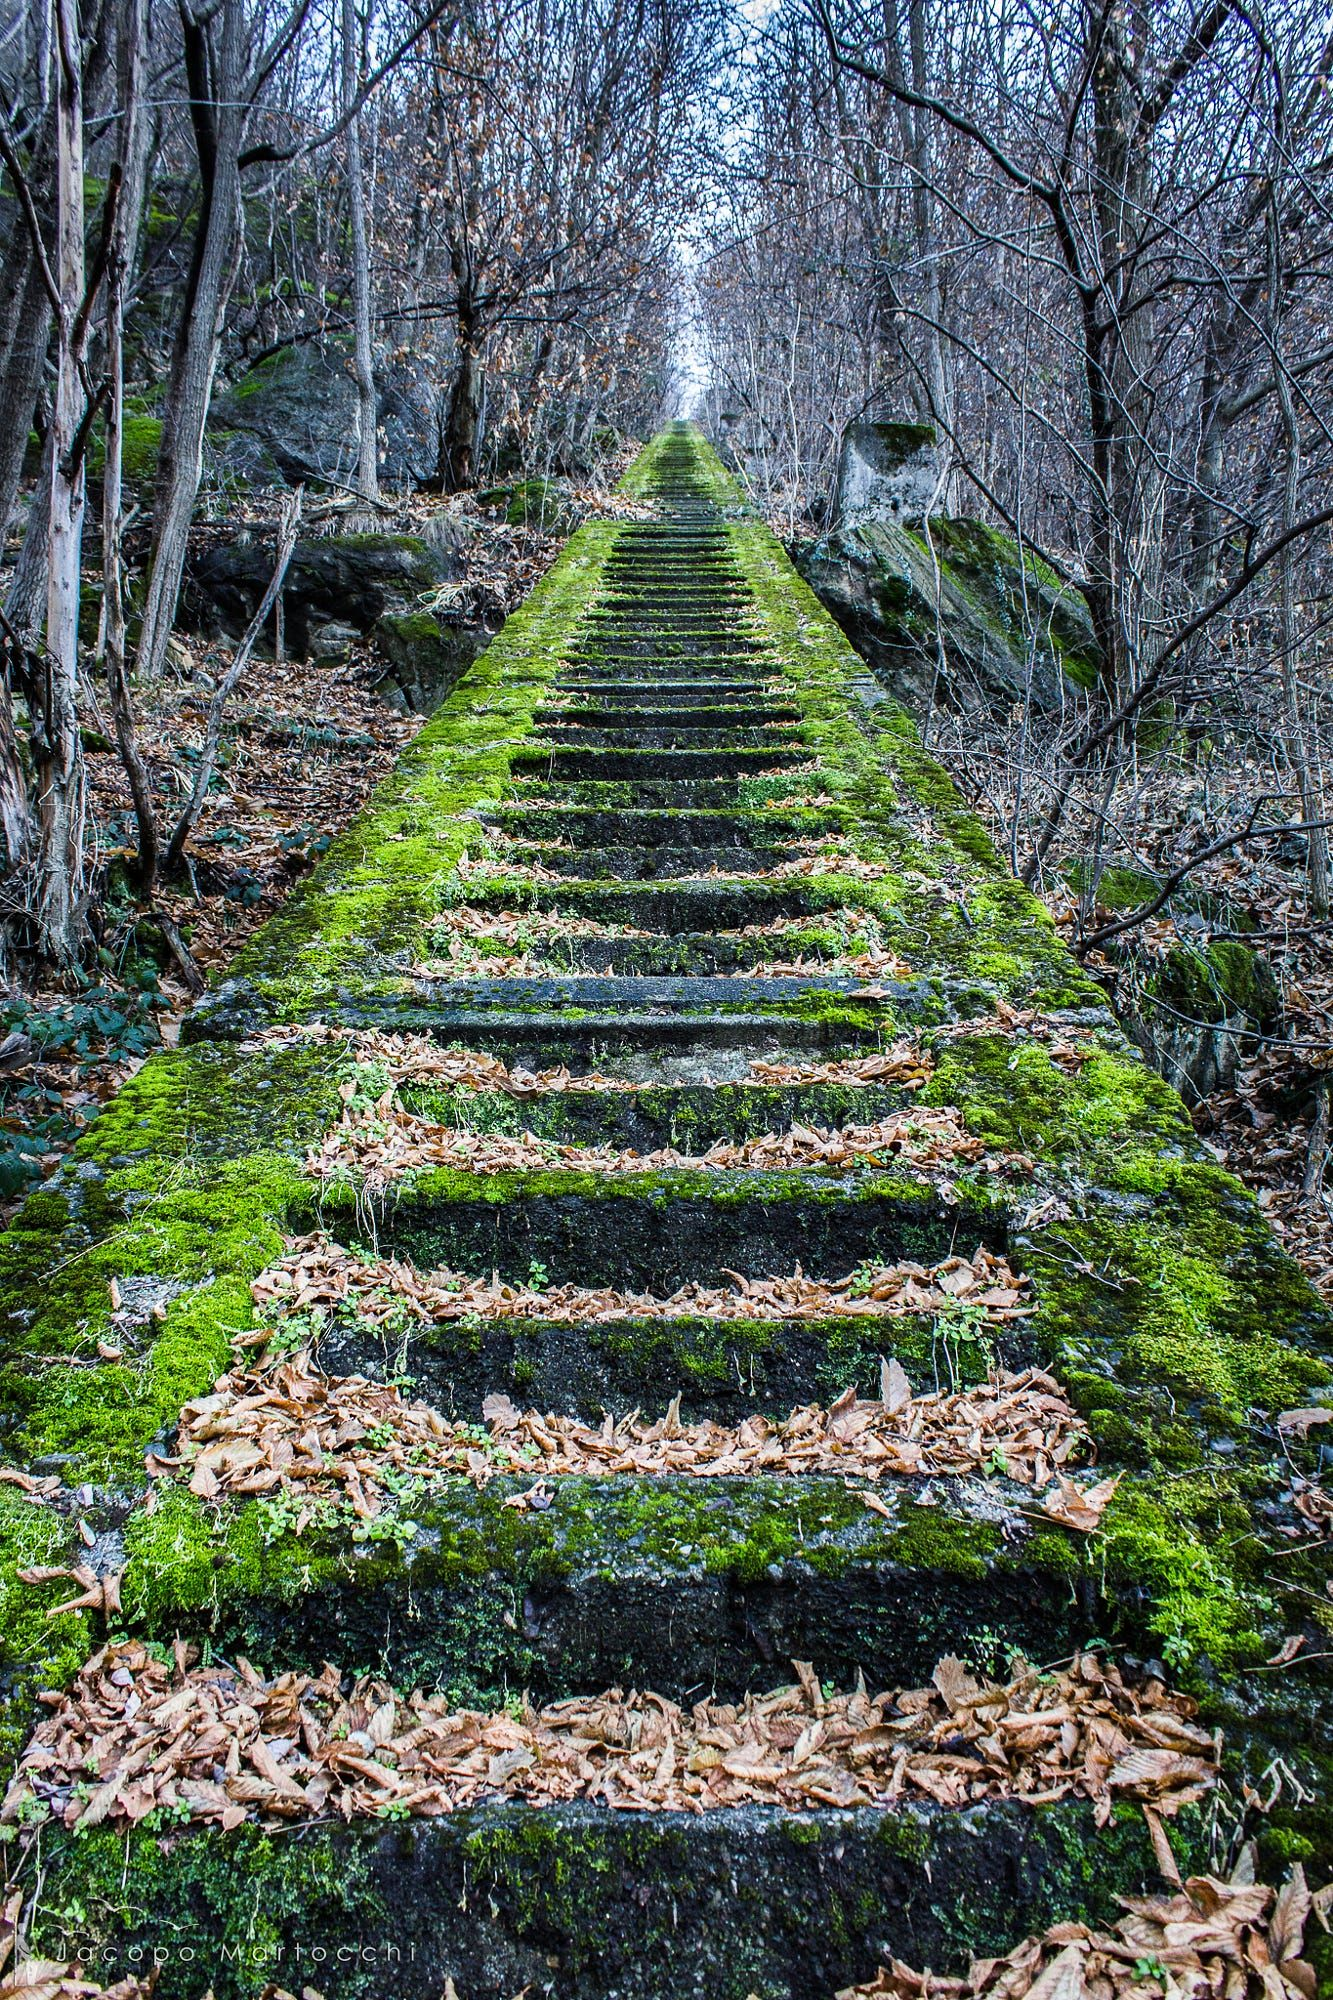 Stairway to Heaven by Jacopo Martocchi